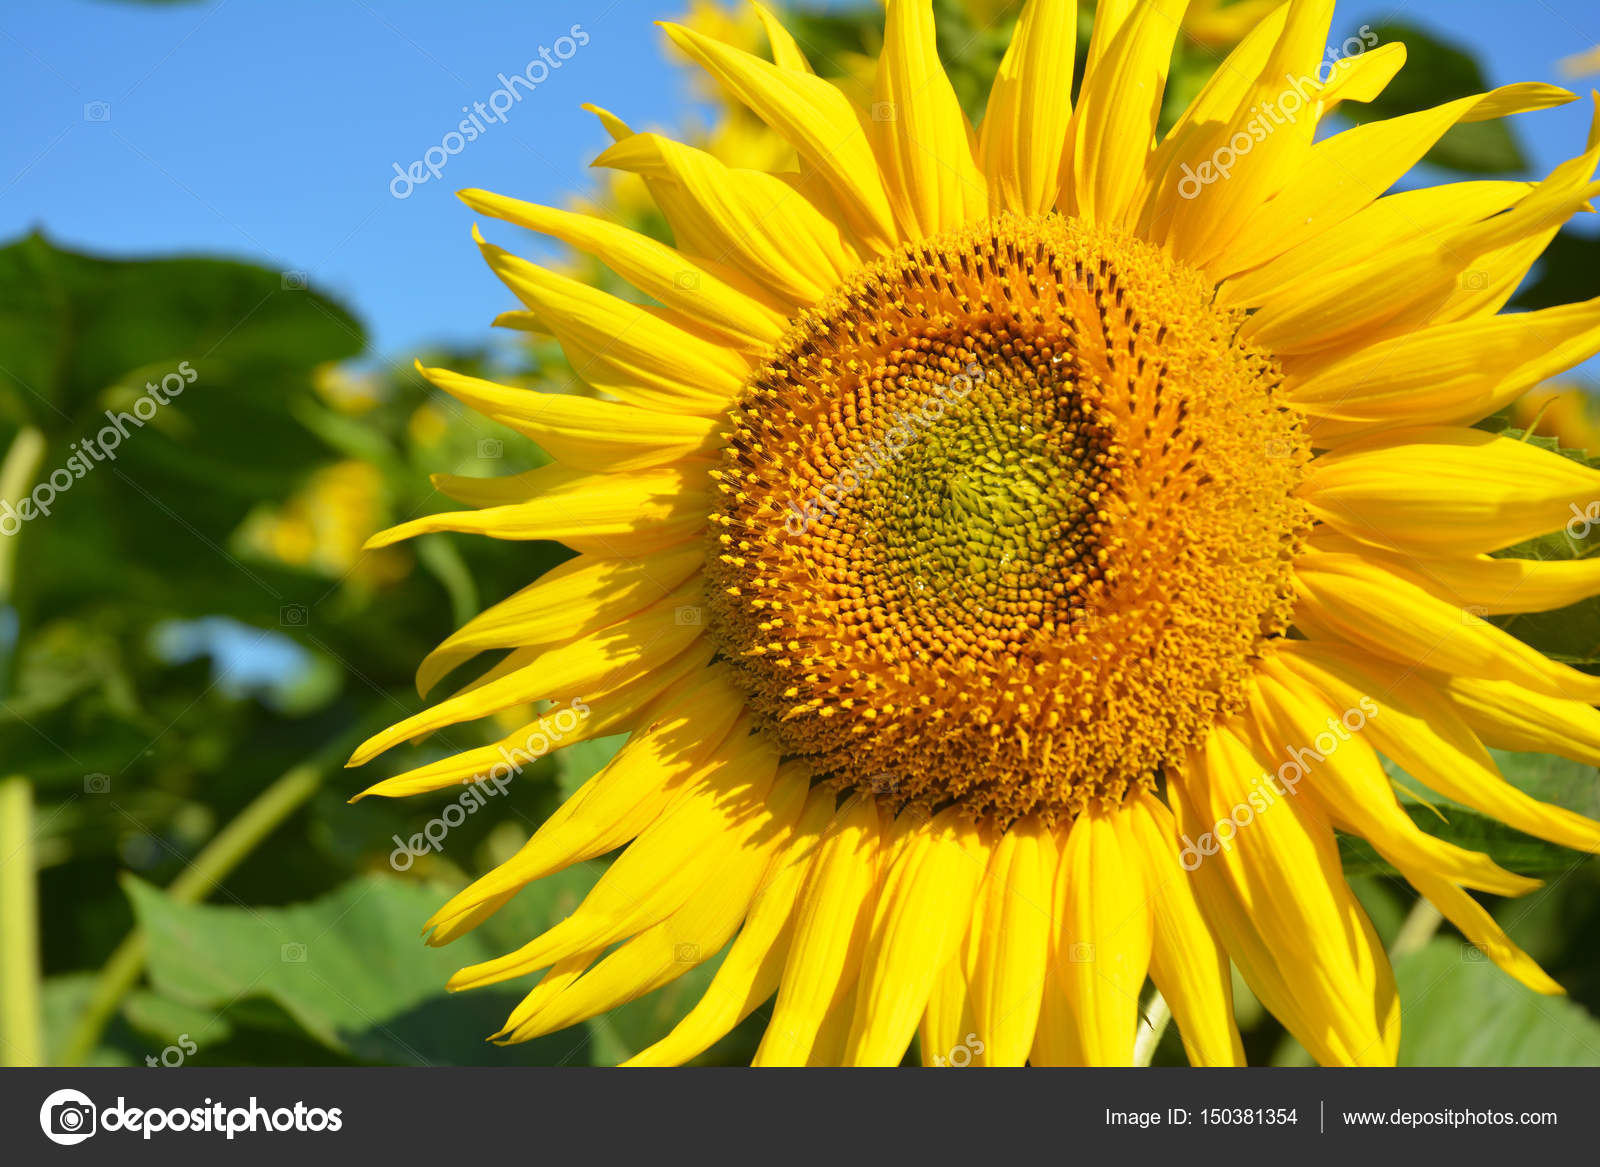 sunflowers field, sunflower photo, sunflower wallpaper. — stock